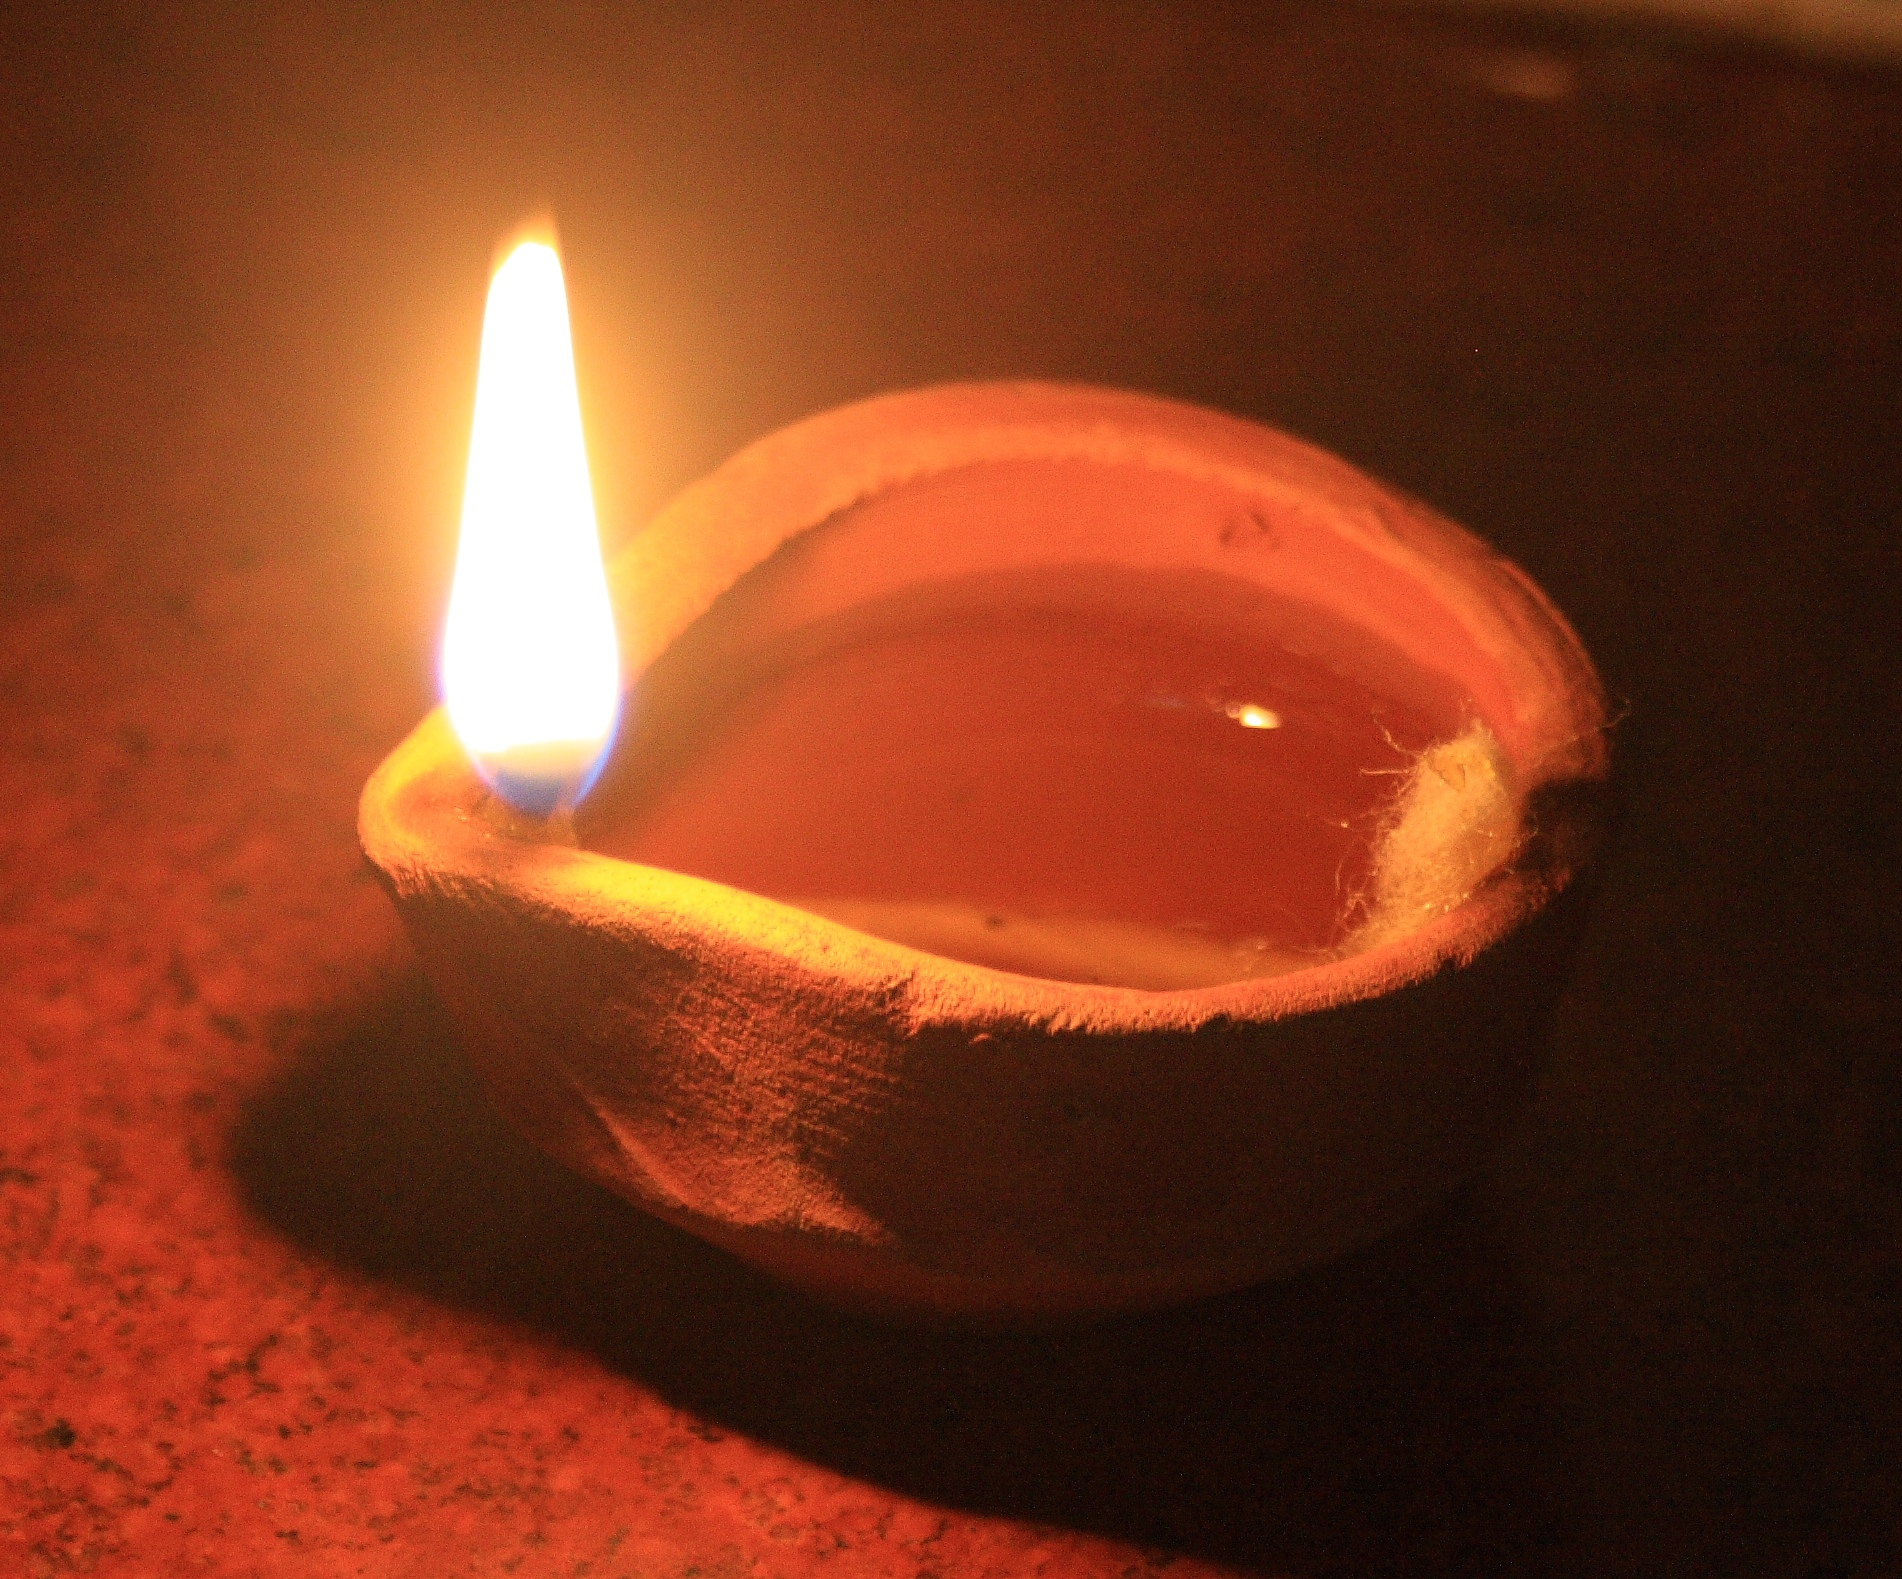 Earthen Lamp Diwali File Diwalioillampcrop Jpg Wikimedia Commons